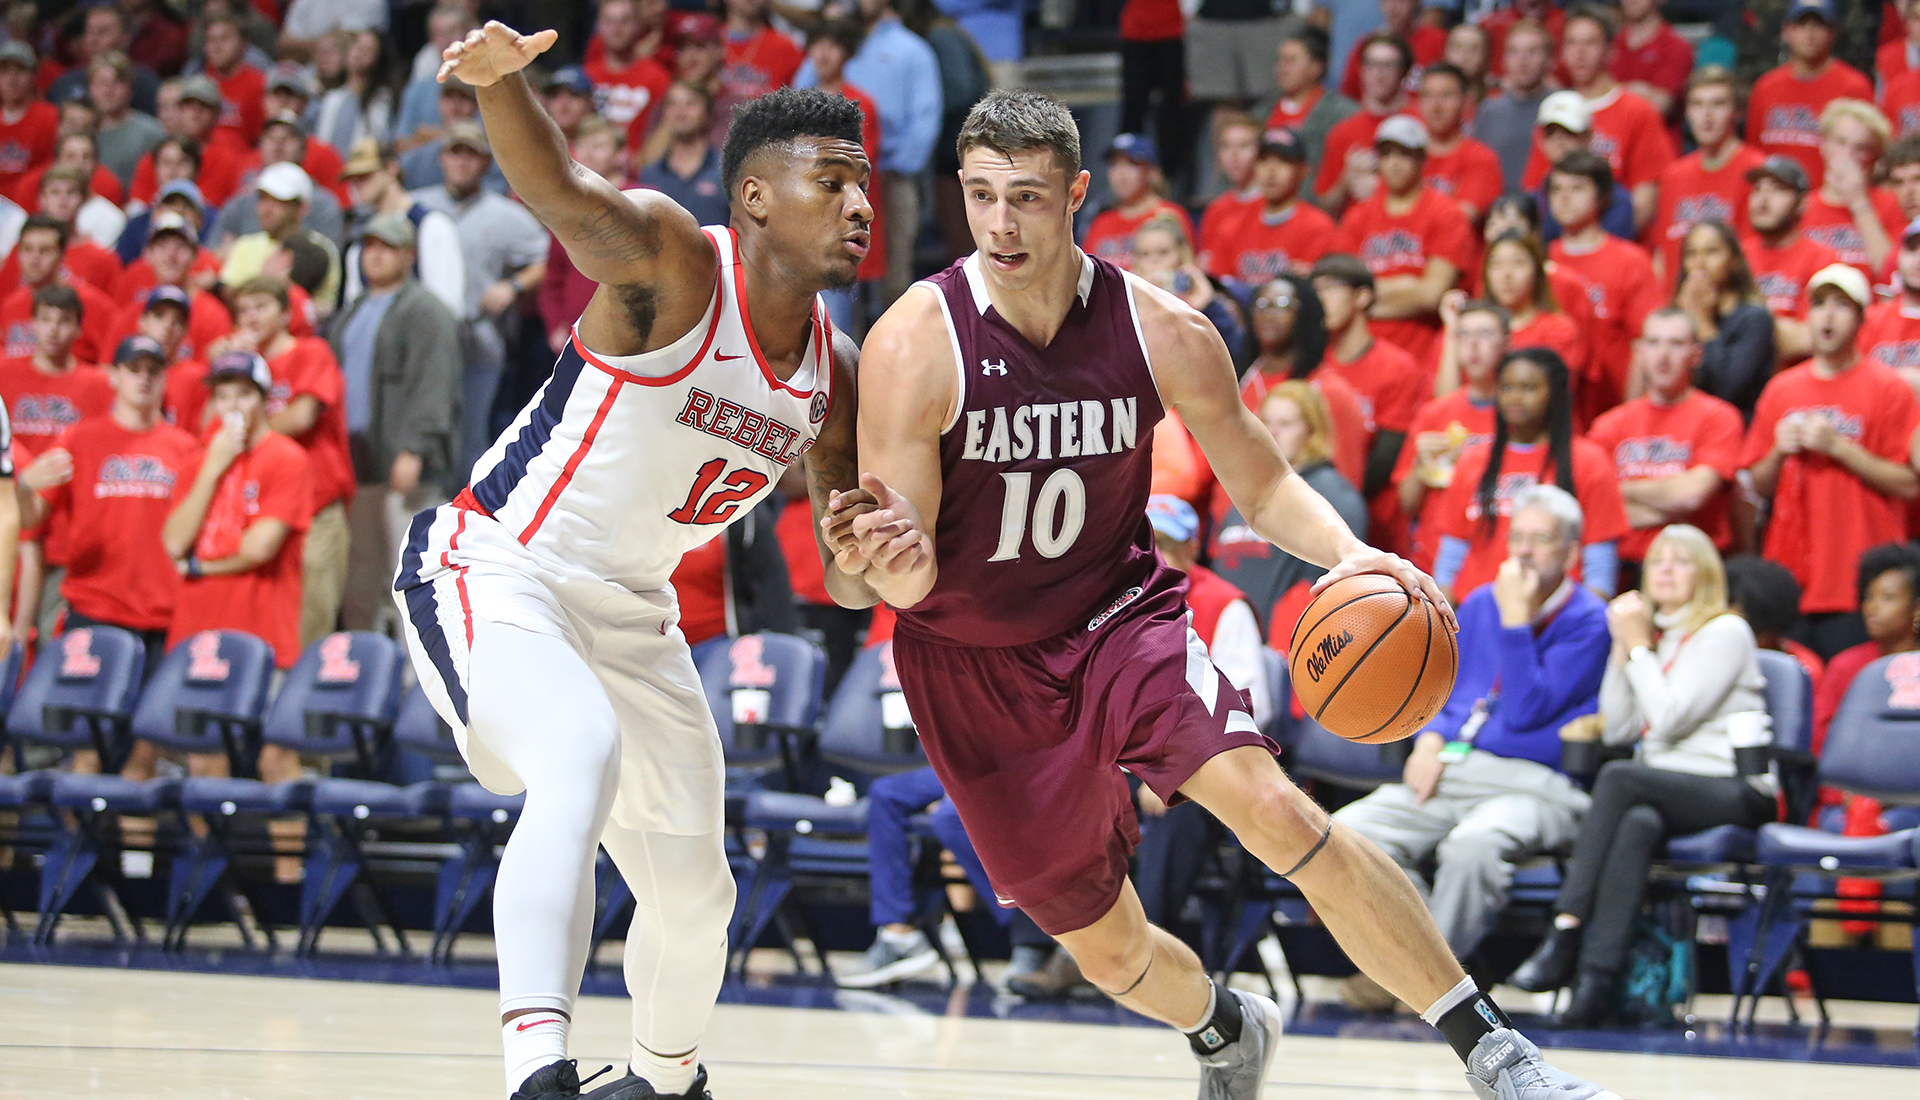 Mayo's Double-Double Not Enough in EKU's 85-75 Loss at Ole Miss